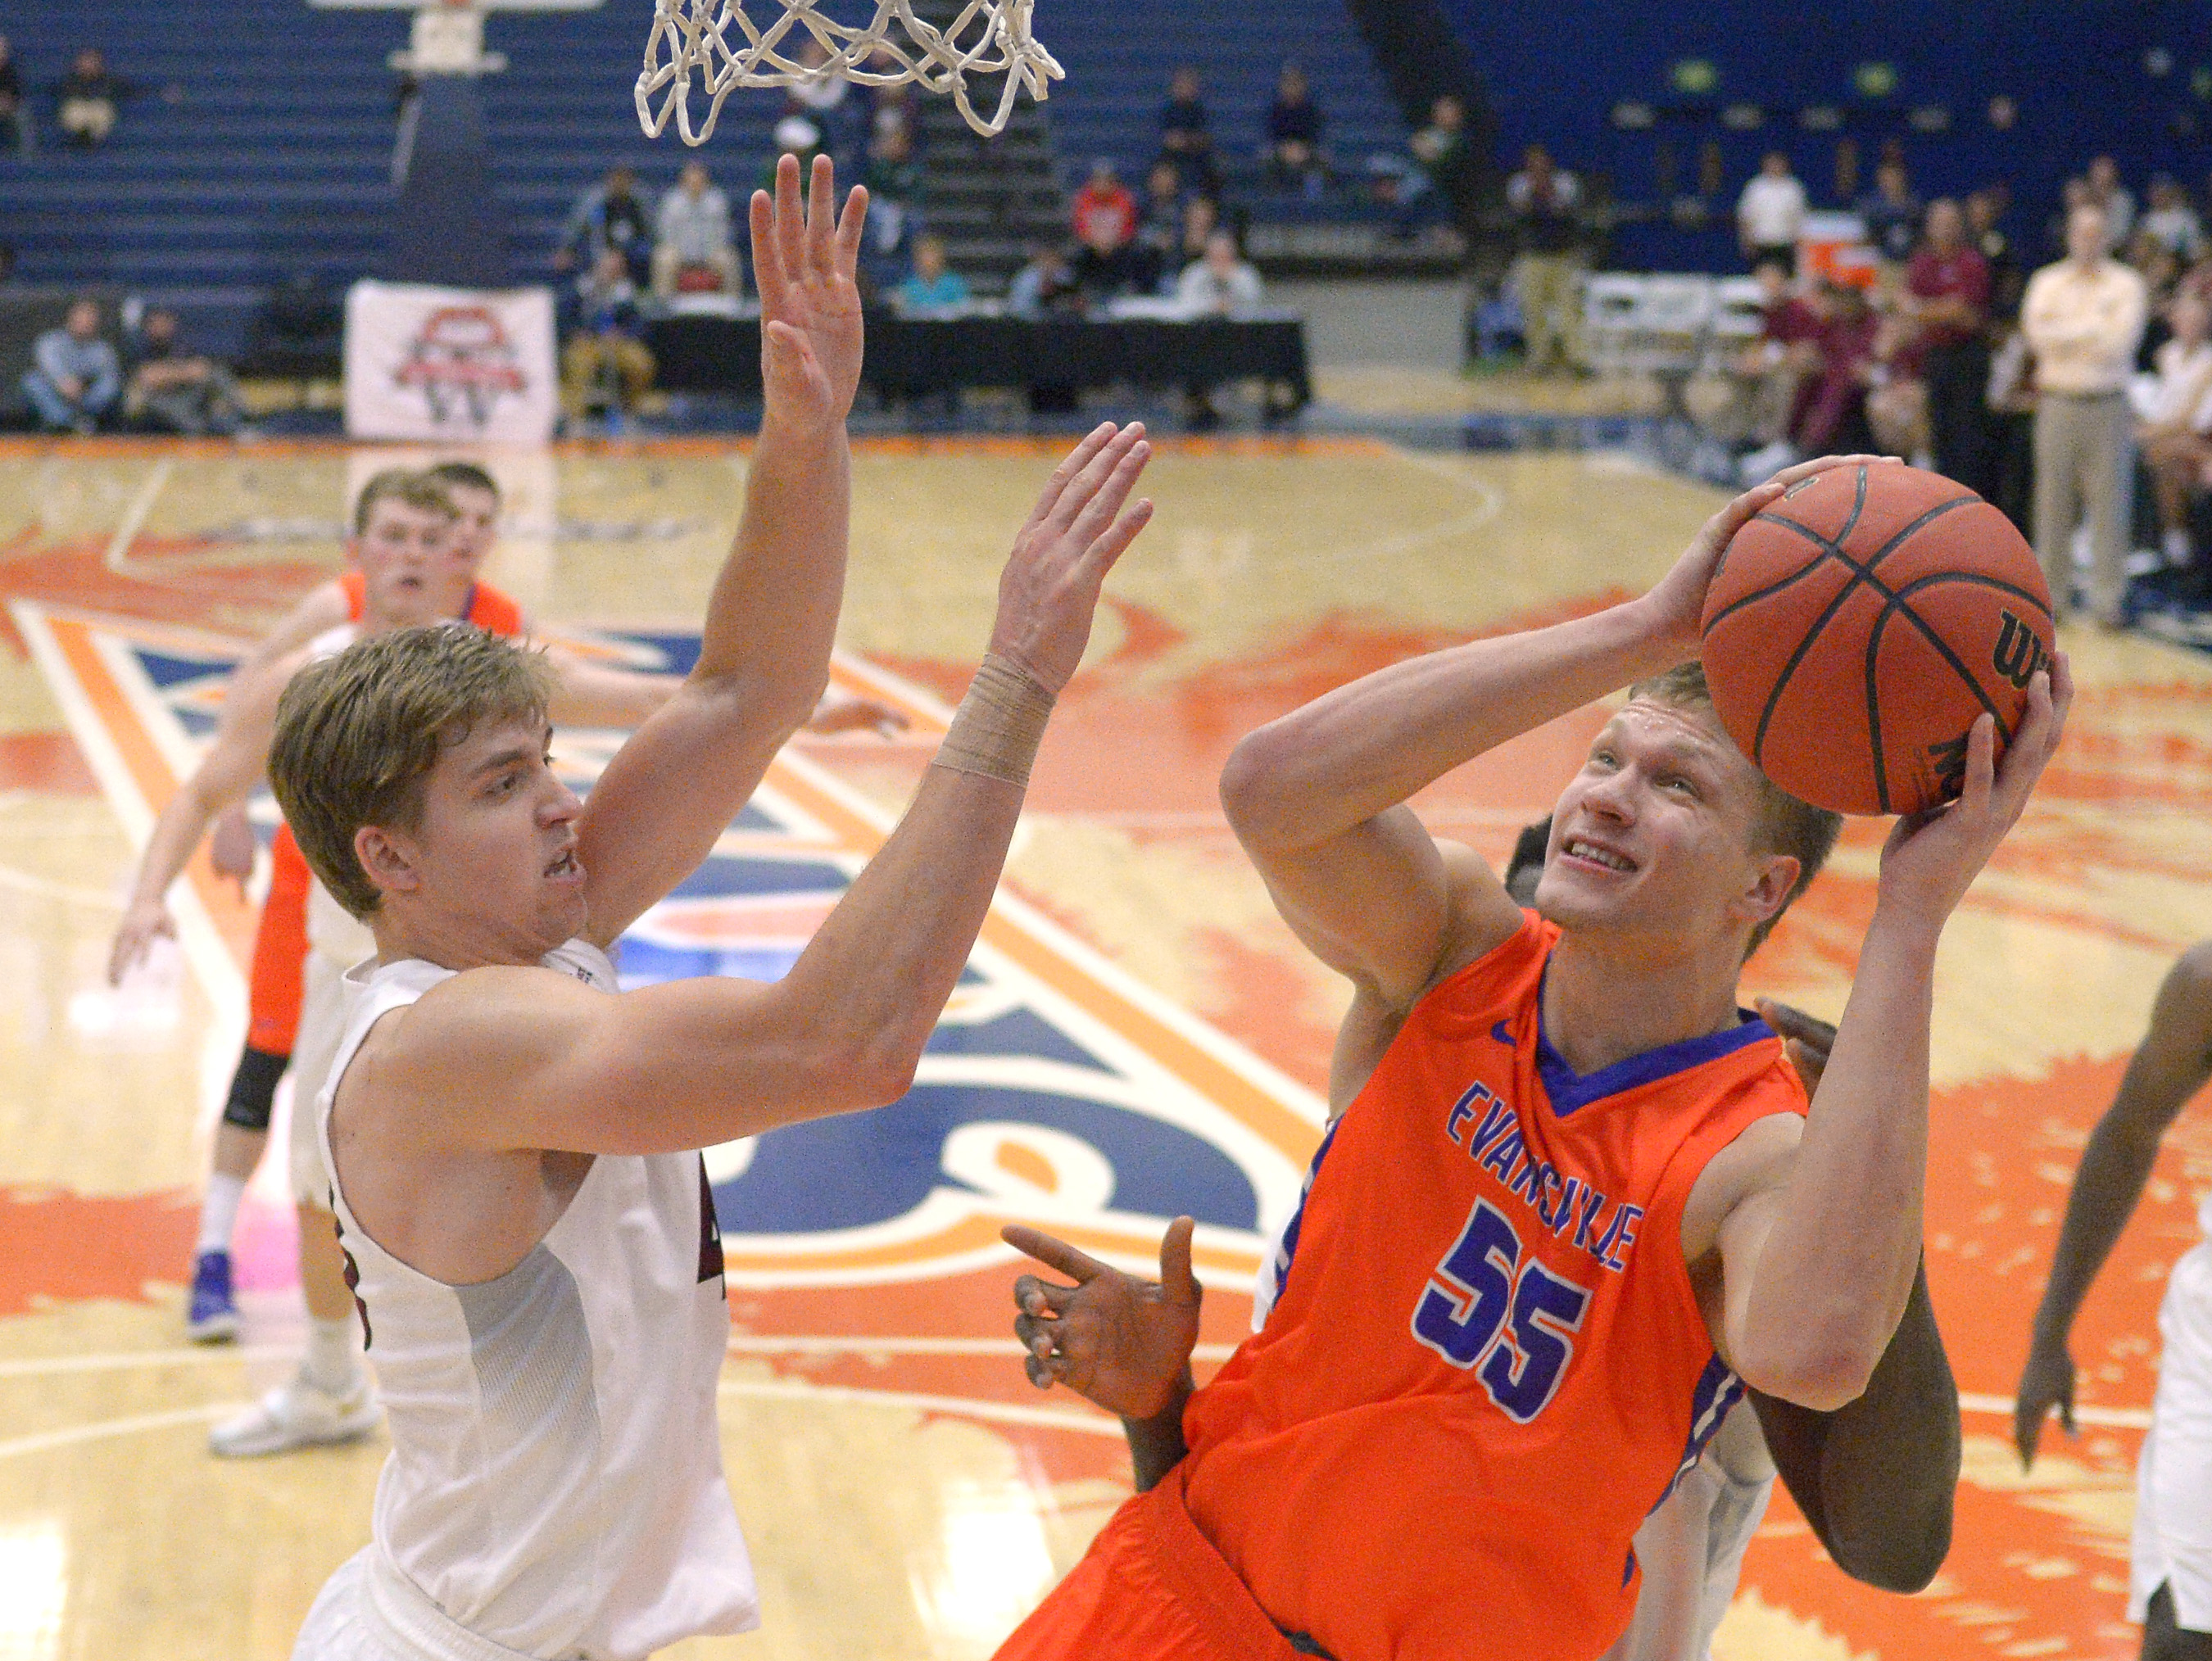 Evansville center Egidijus Mockevicius, right, shoots as Santa Clara forward Nate Kratch defends during the second half of an NCAA college basketball game at the Wooden Legacy tournament Friday, Nov. 27, 2015, in Fullerton, Calif. Evansville won 69-57. (A